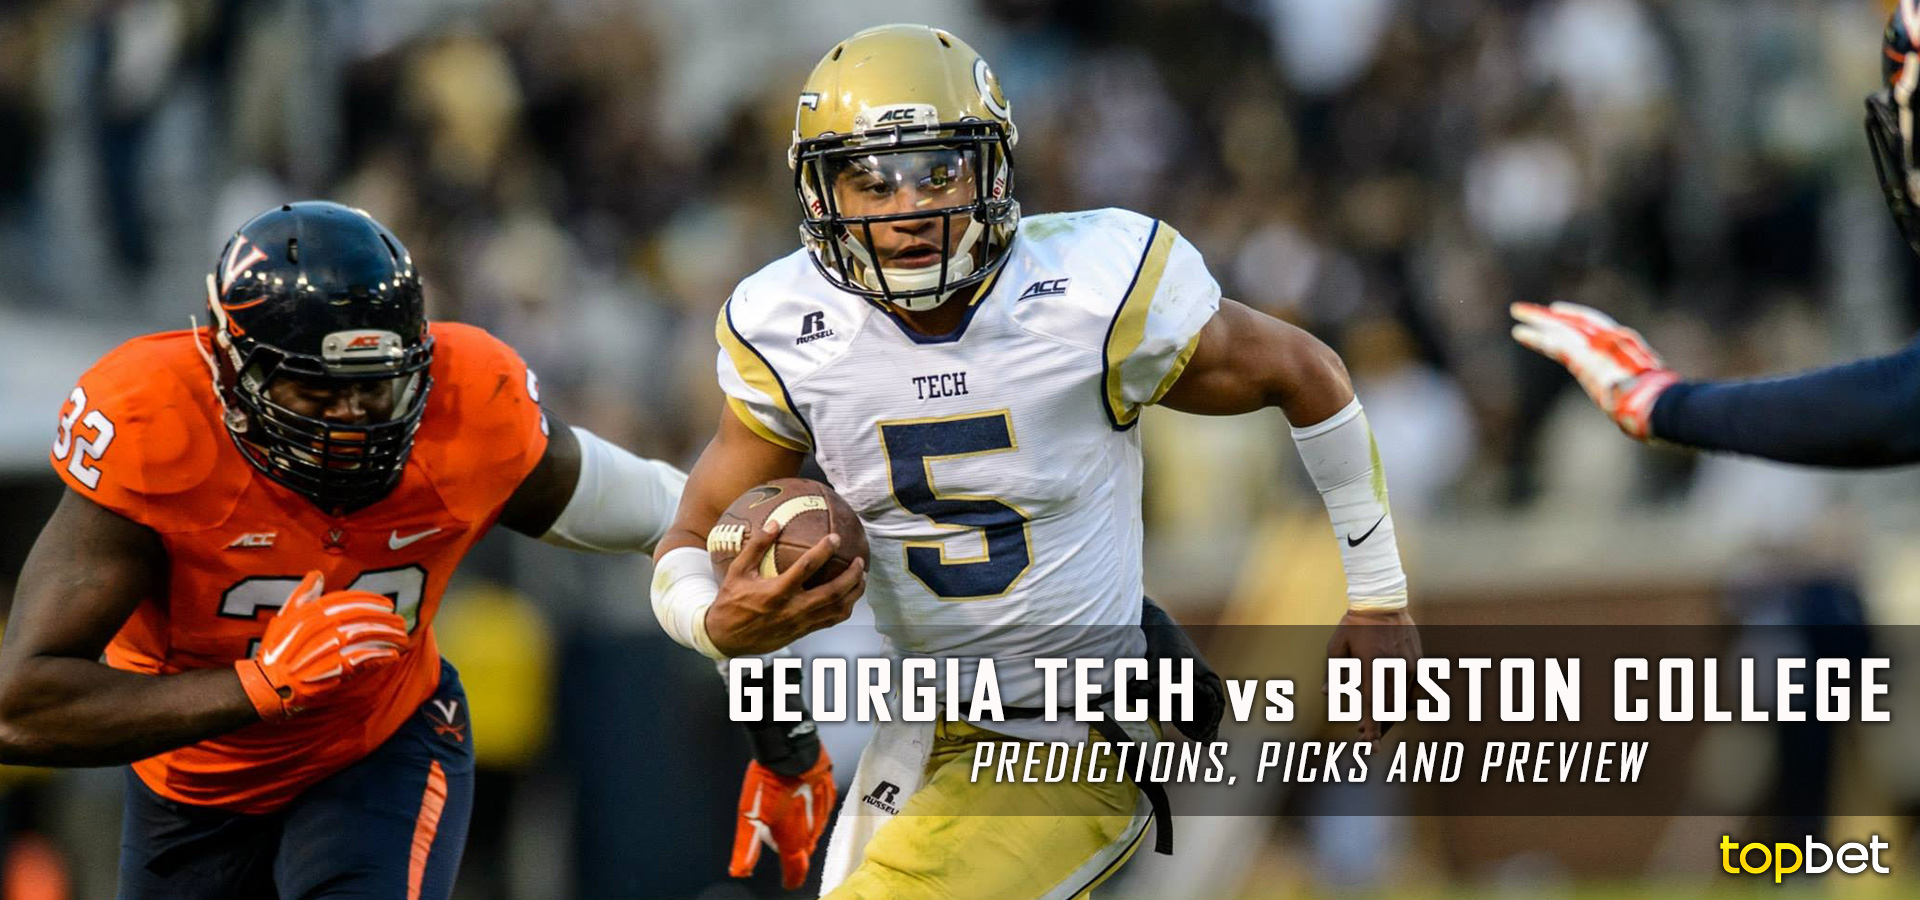 the best bet on sports review college football betting tips